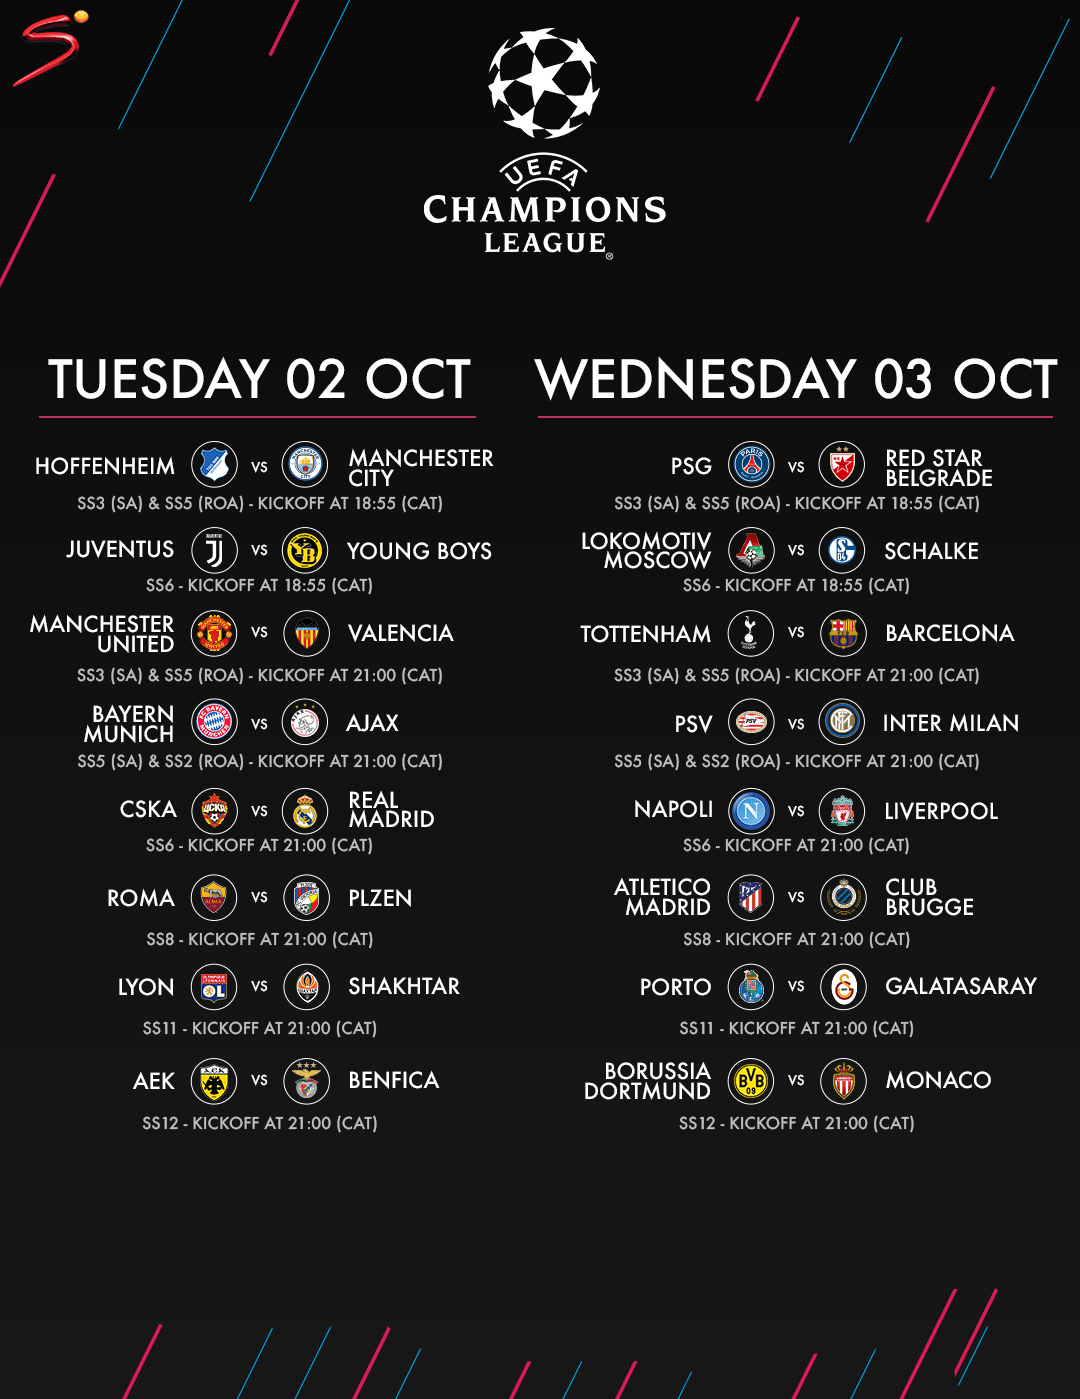 Catch Exciting UEFA Champions League Matches on DStv and GOtv